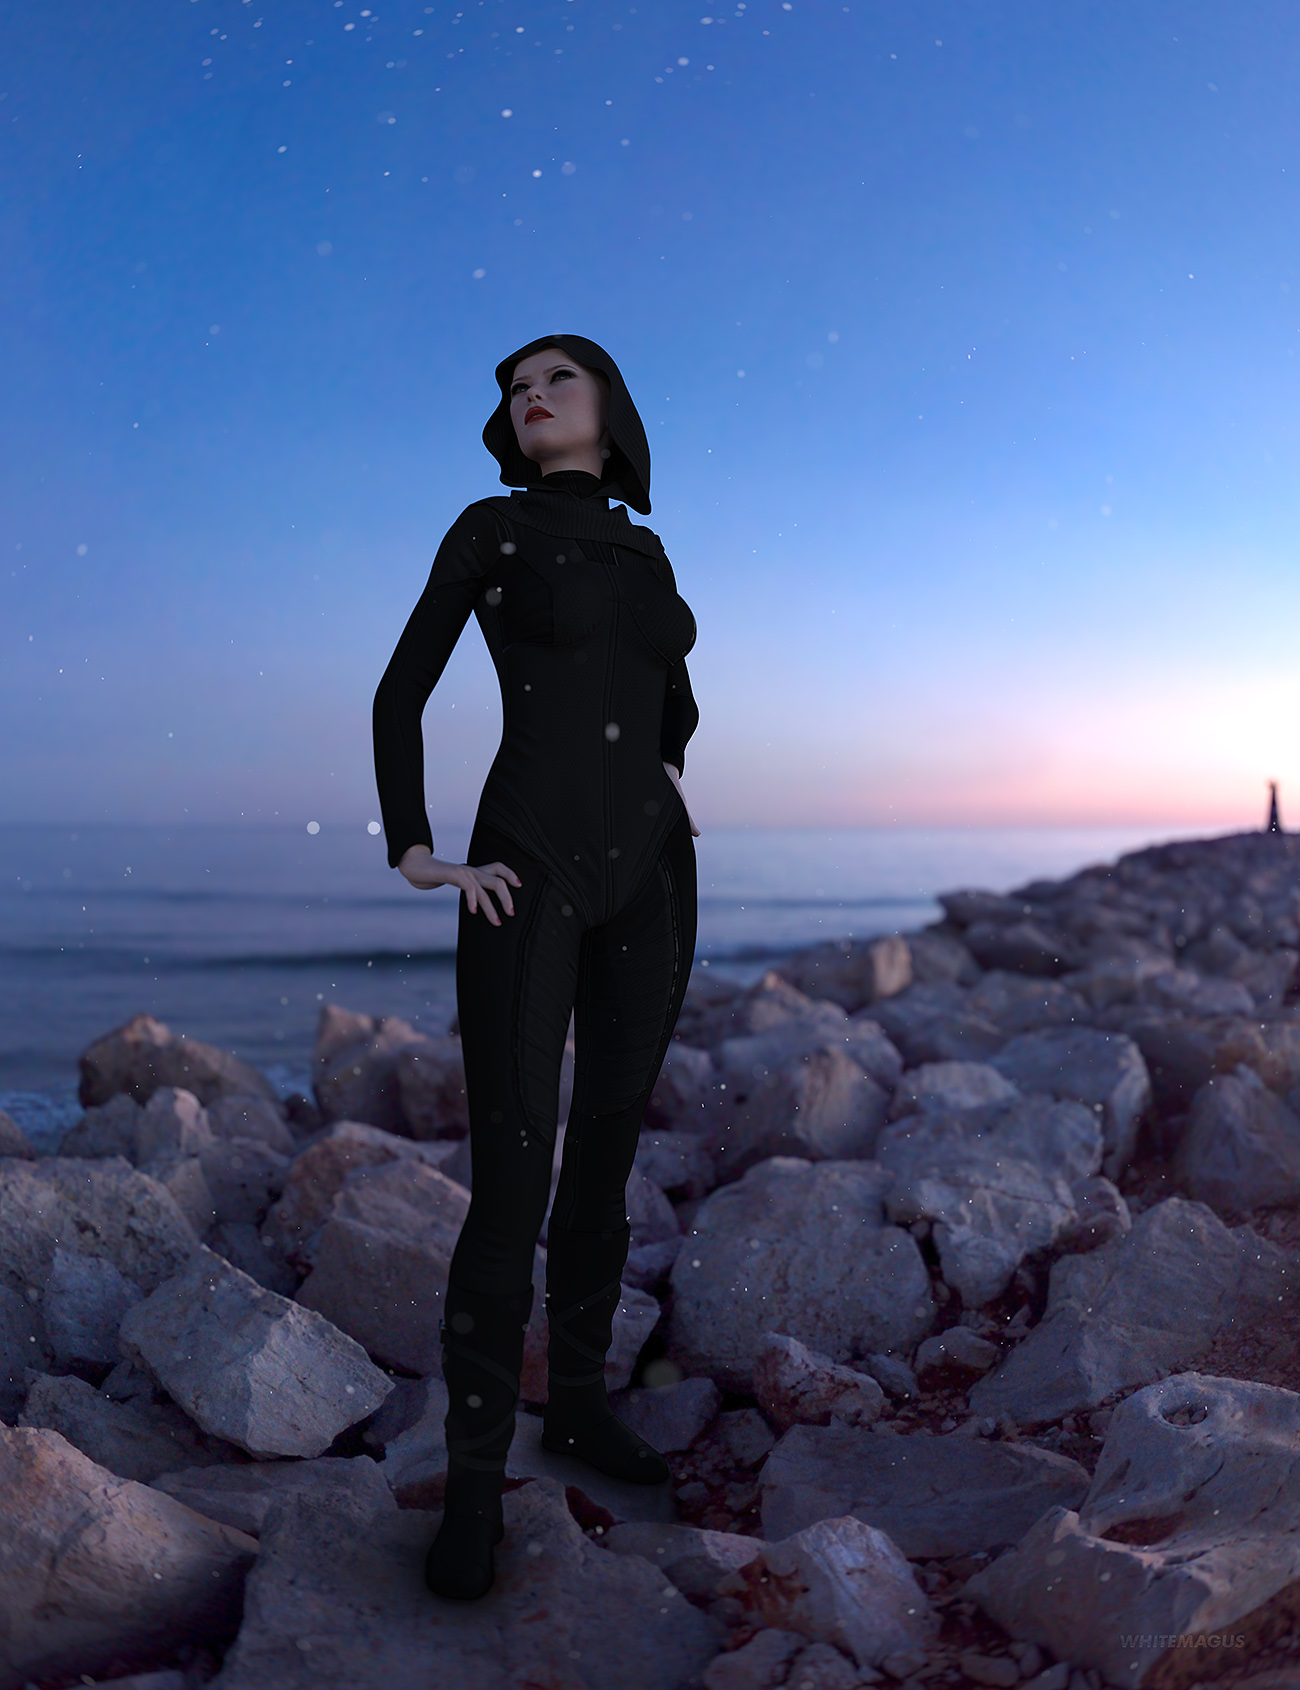 HDRI Night Mix by: Whitemagus, 3D Models by Daz 3D